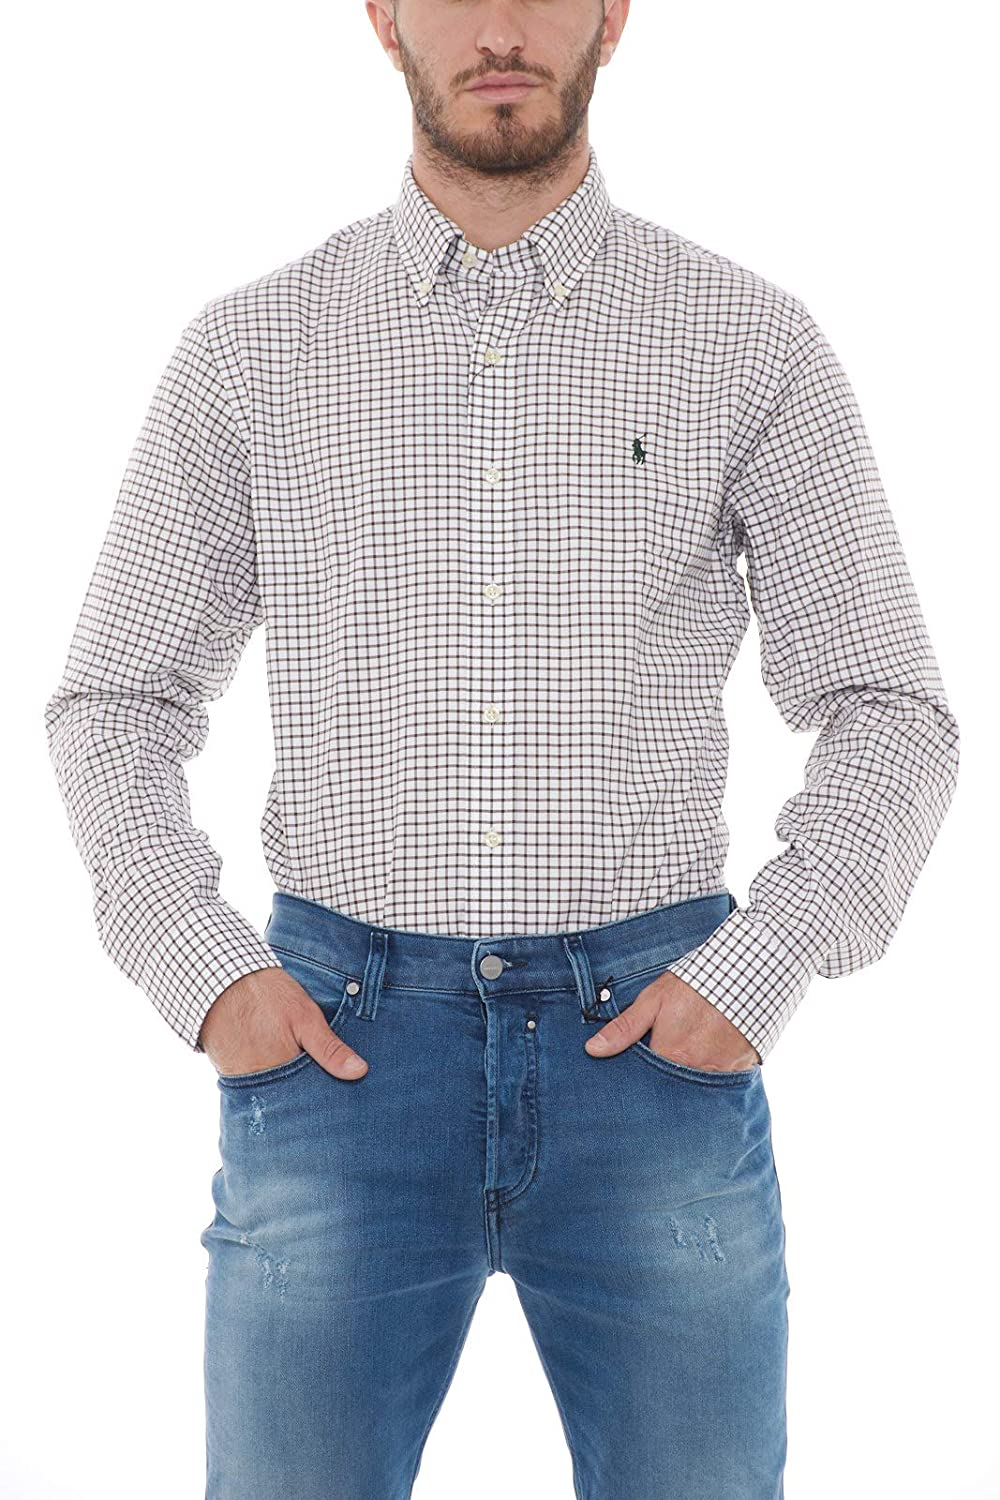 Polo Ralph Lauren Camicia a Quadri Uomo Mod. 710723598 XL: Amazon ...